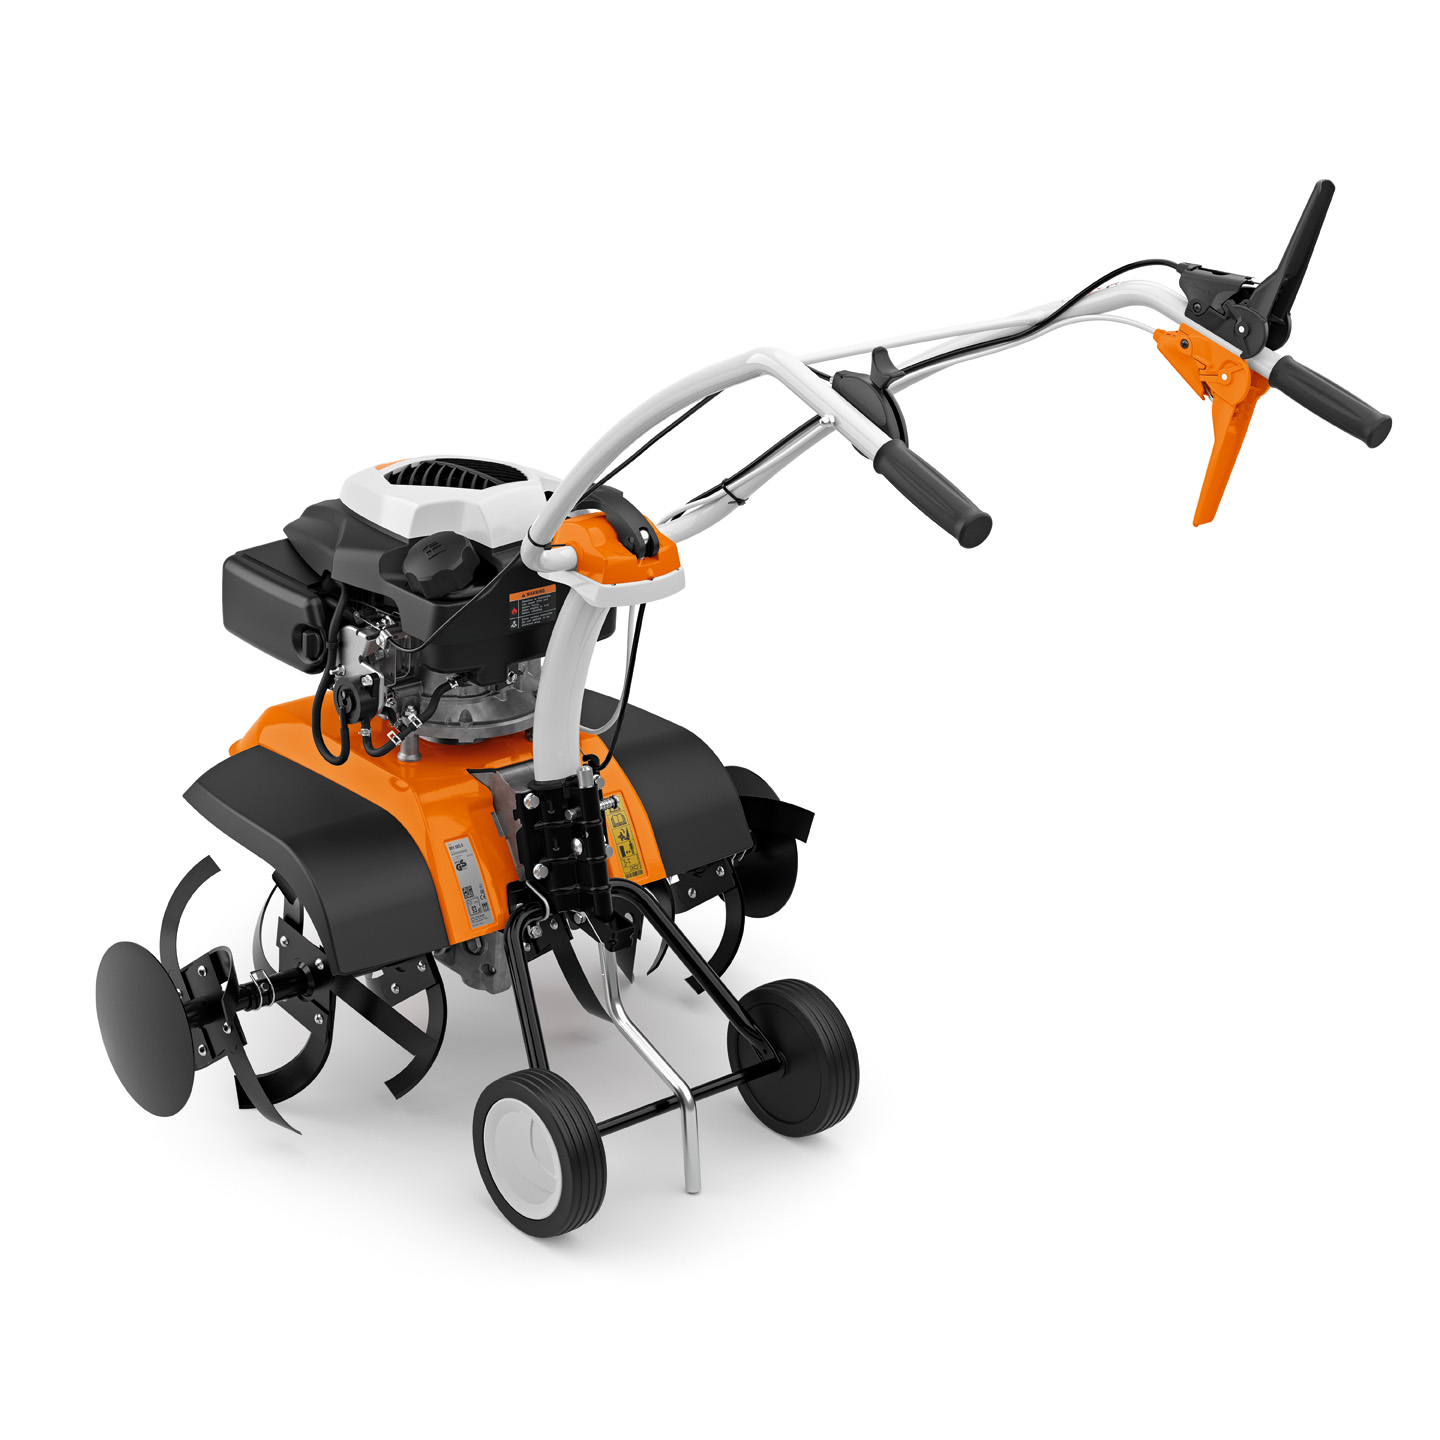 MH 585 - POWERFUL PETROL TILLER FOR LARGE AREAS